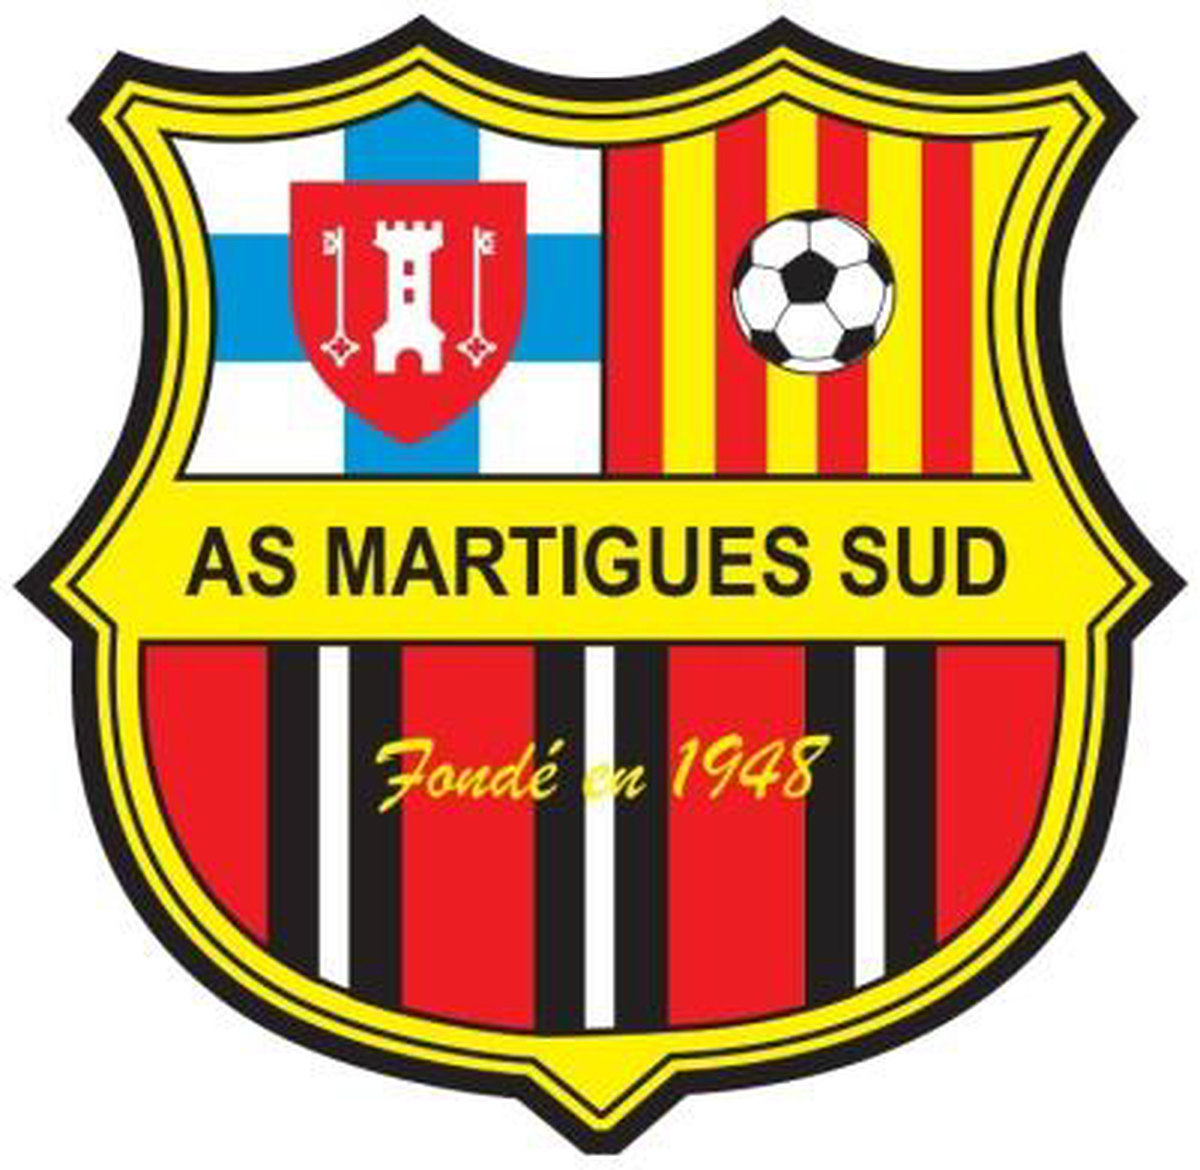 https://s2.static-footeo.com/uploads/as-martigues-sud/logo__pesull.png